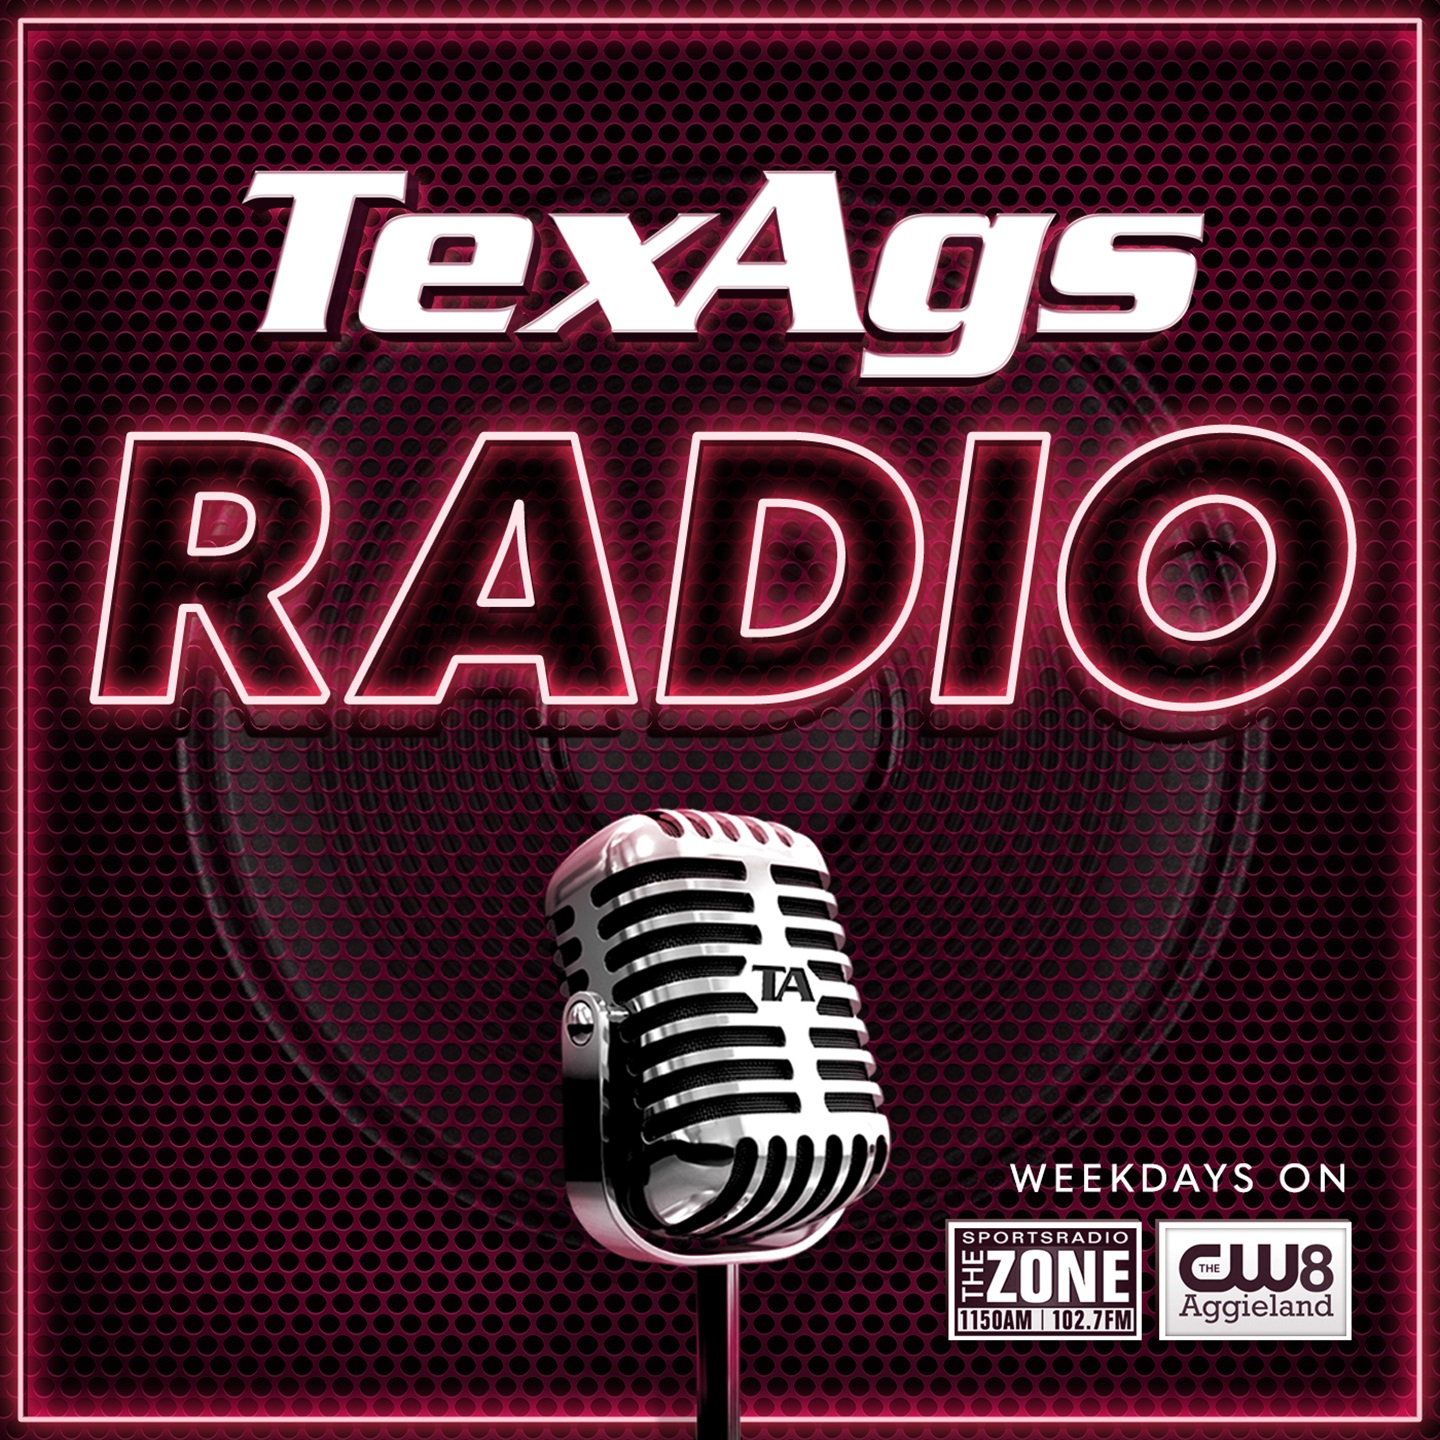 TexAgs Radio: Tuesday (9/17) full show